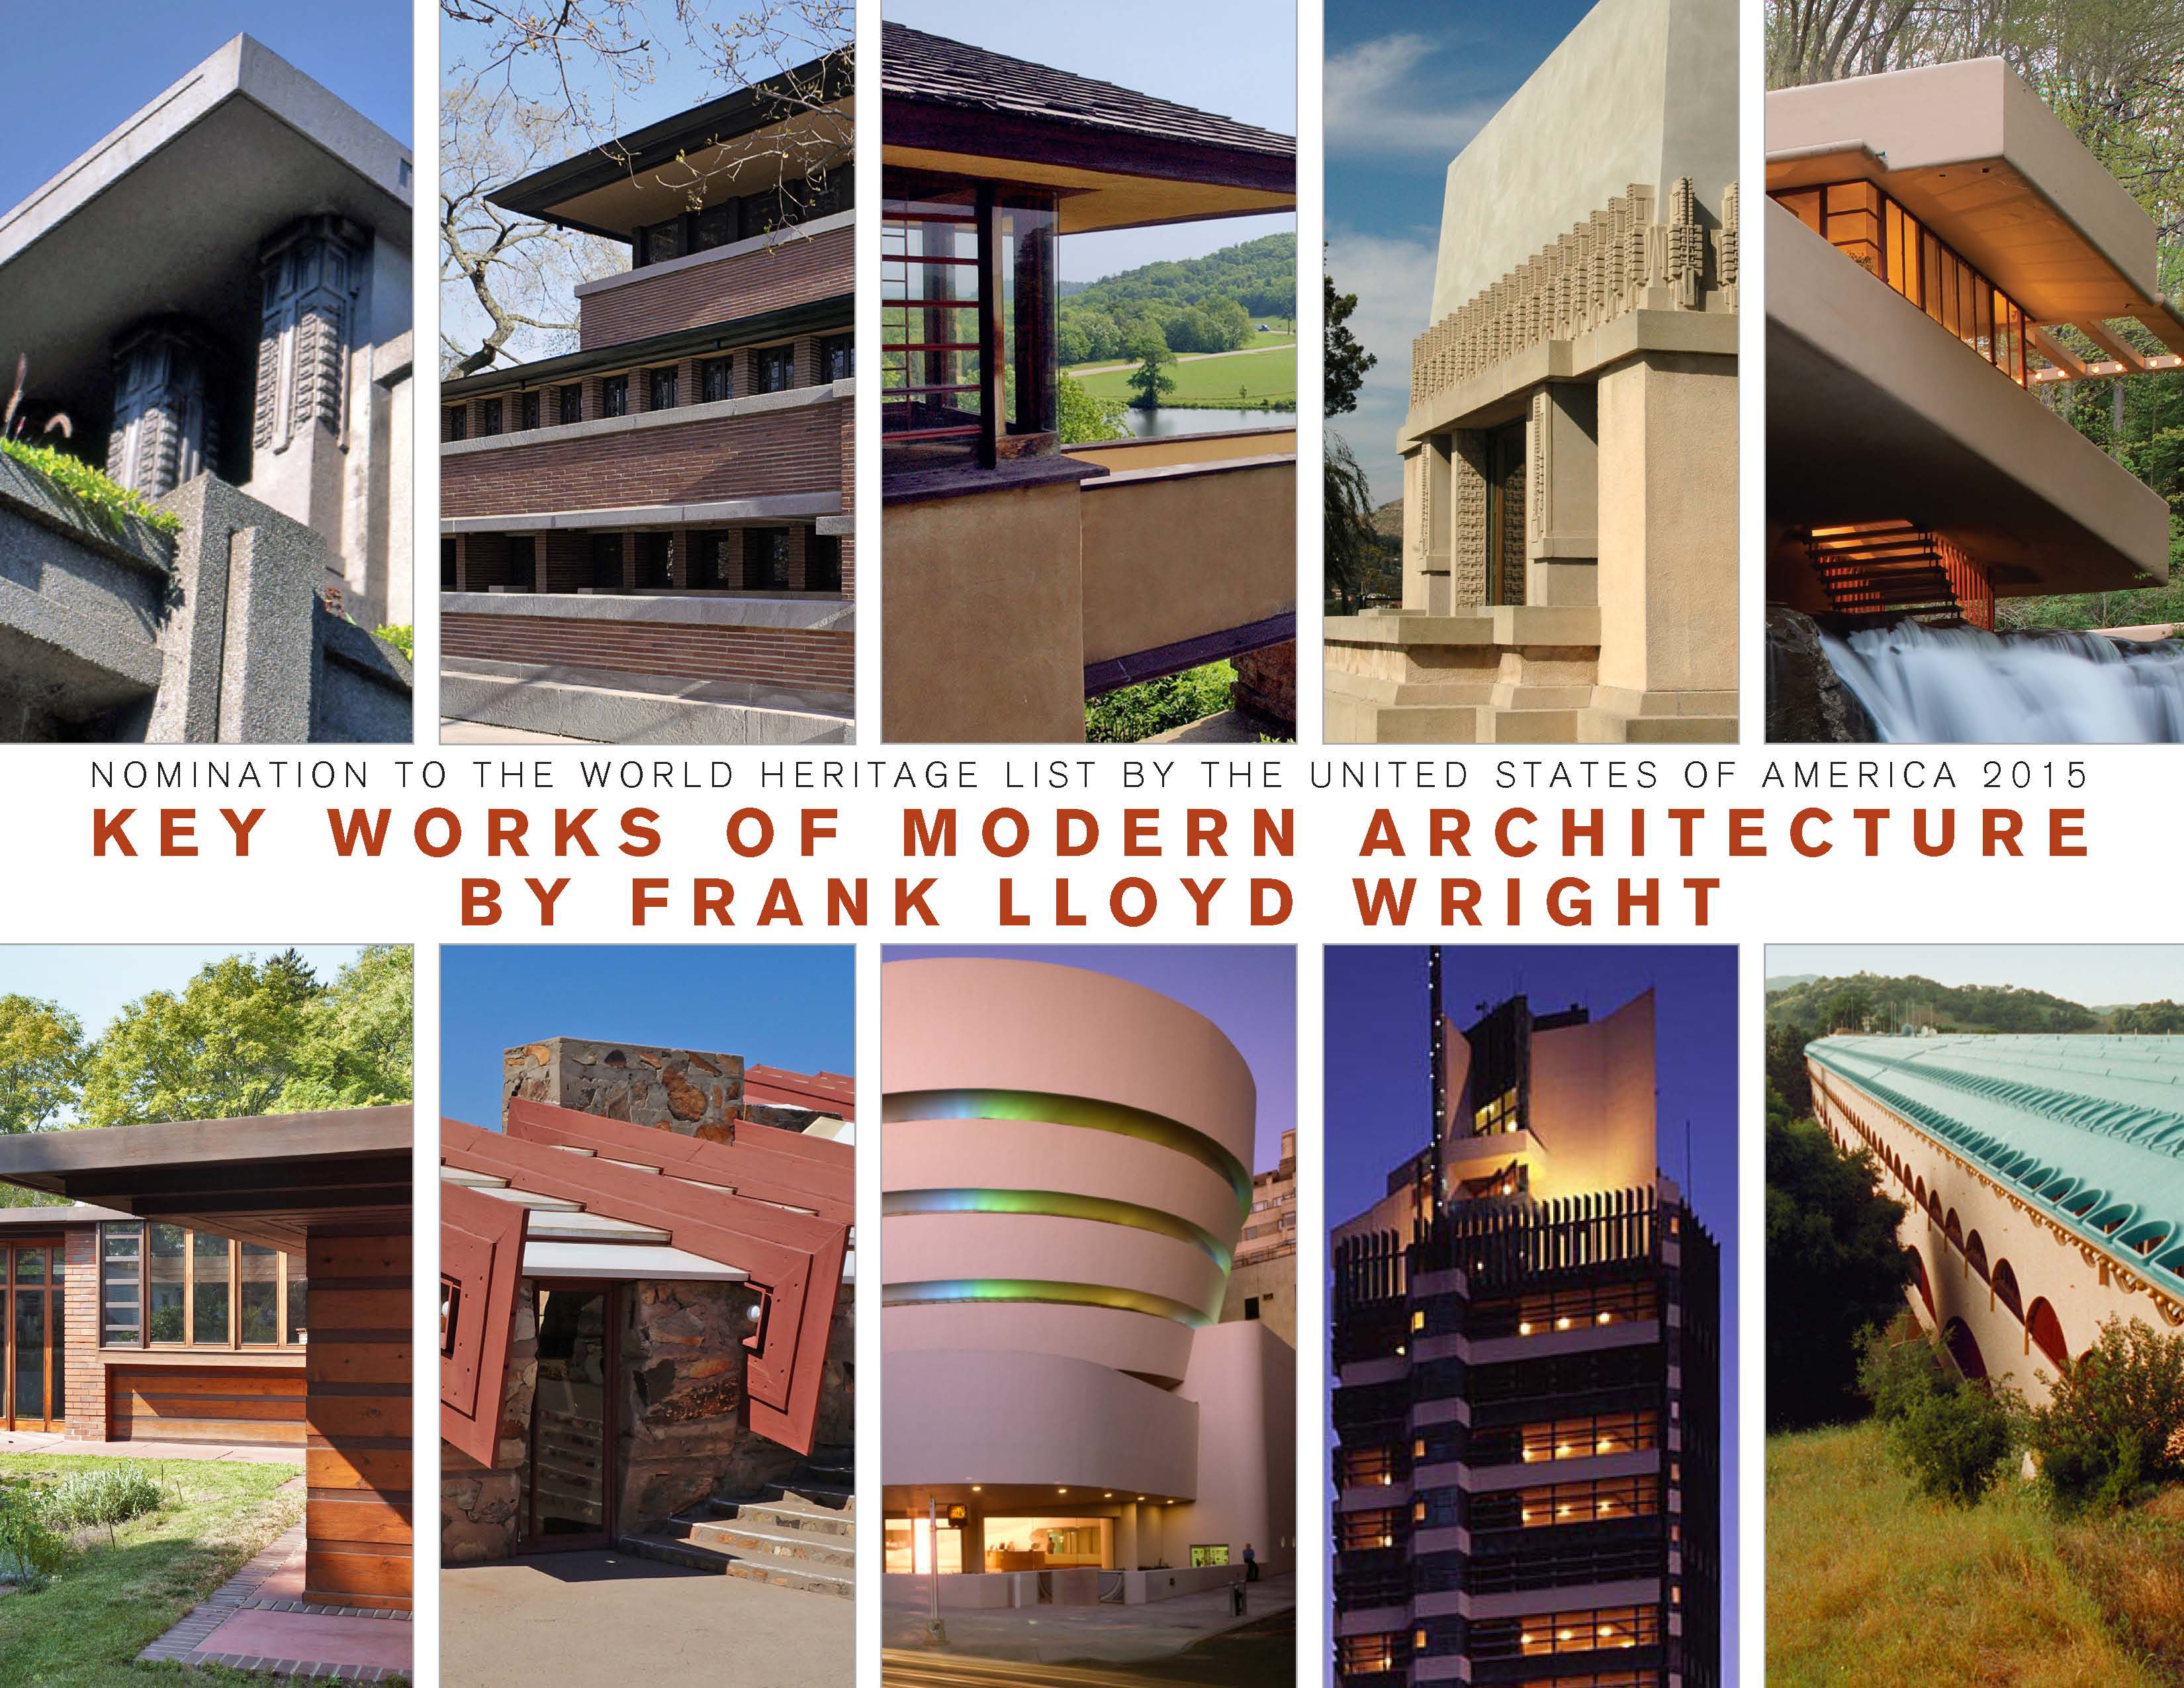 Us Seeks World Heritage Status For Frank Lloyd Wright Buildings